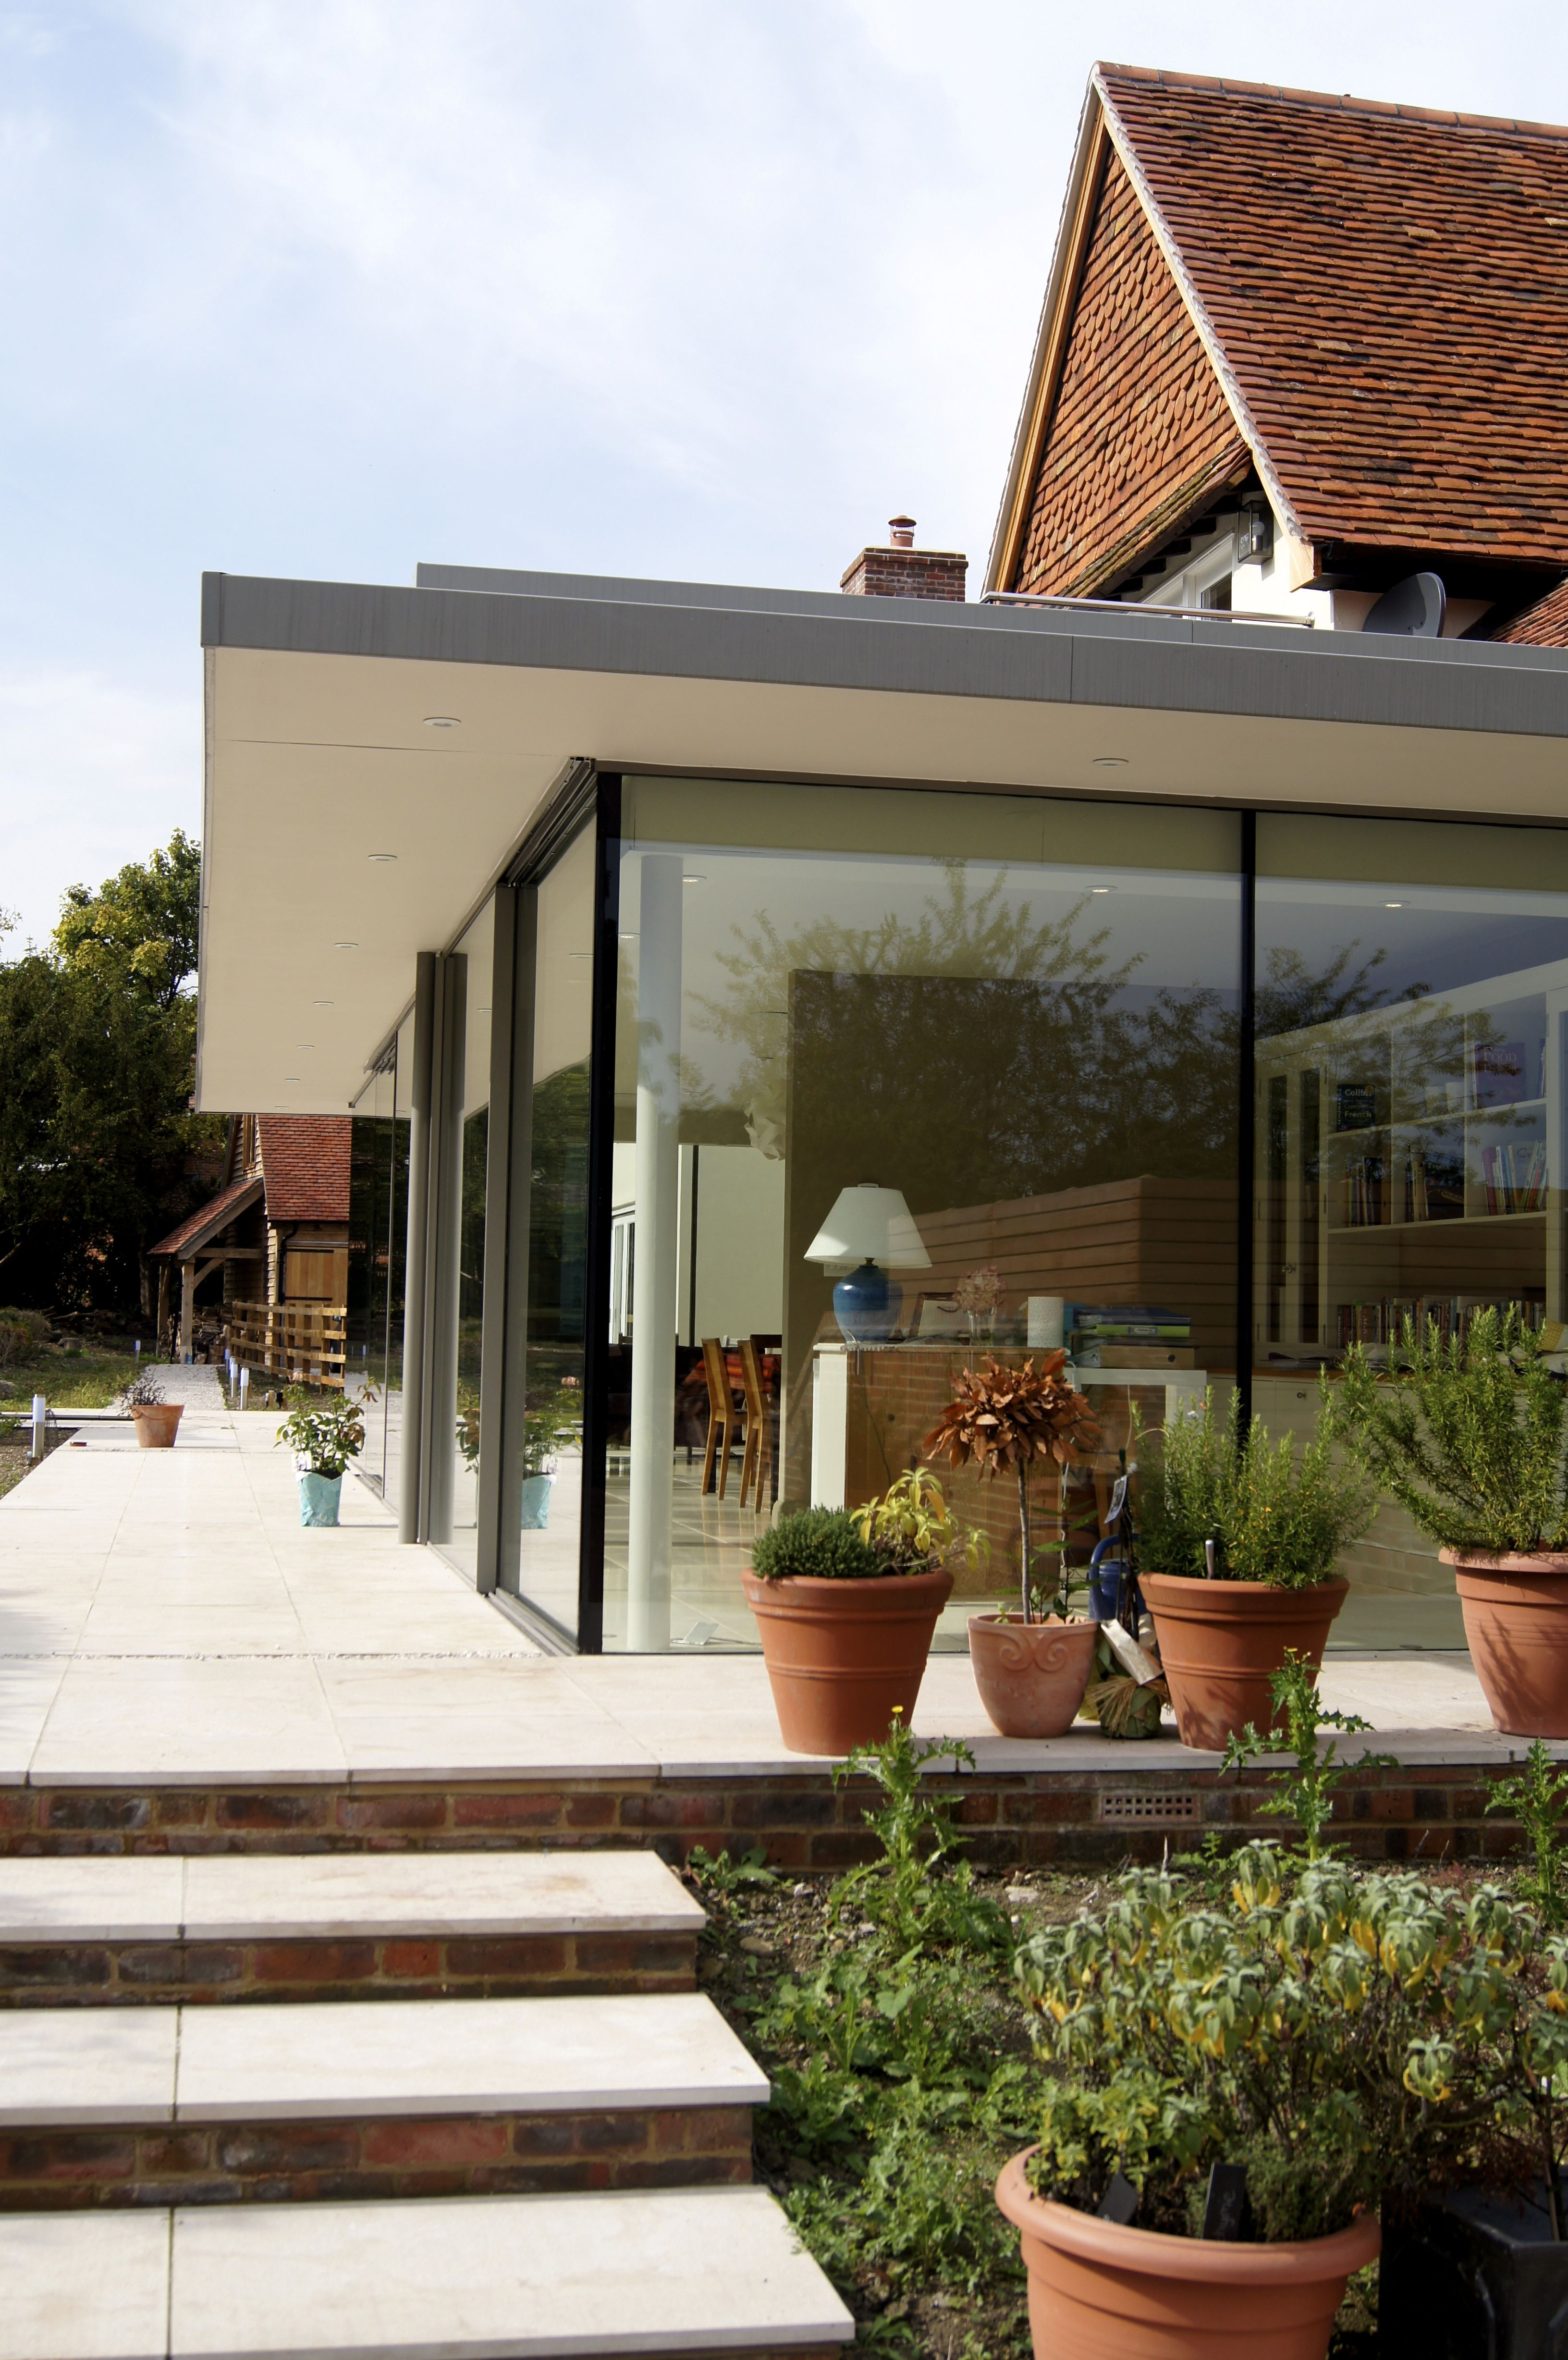 Flat Roofed And Glass Walled Extension To Traditionally Built House Flat Roof Design Flat Roof House Flat Roof Extension